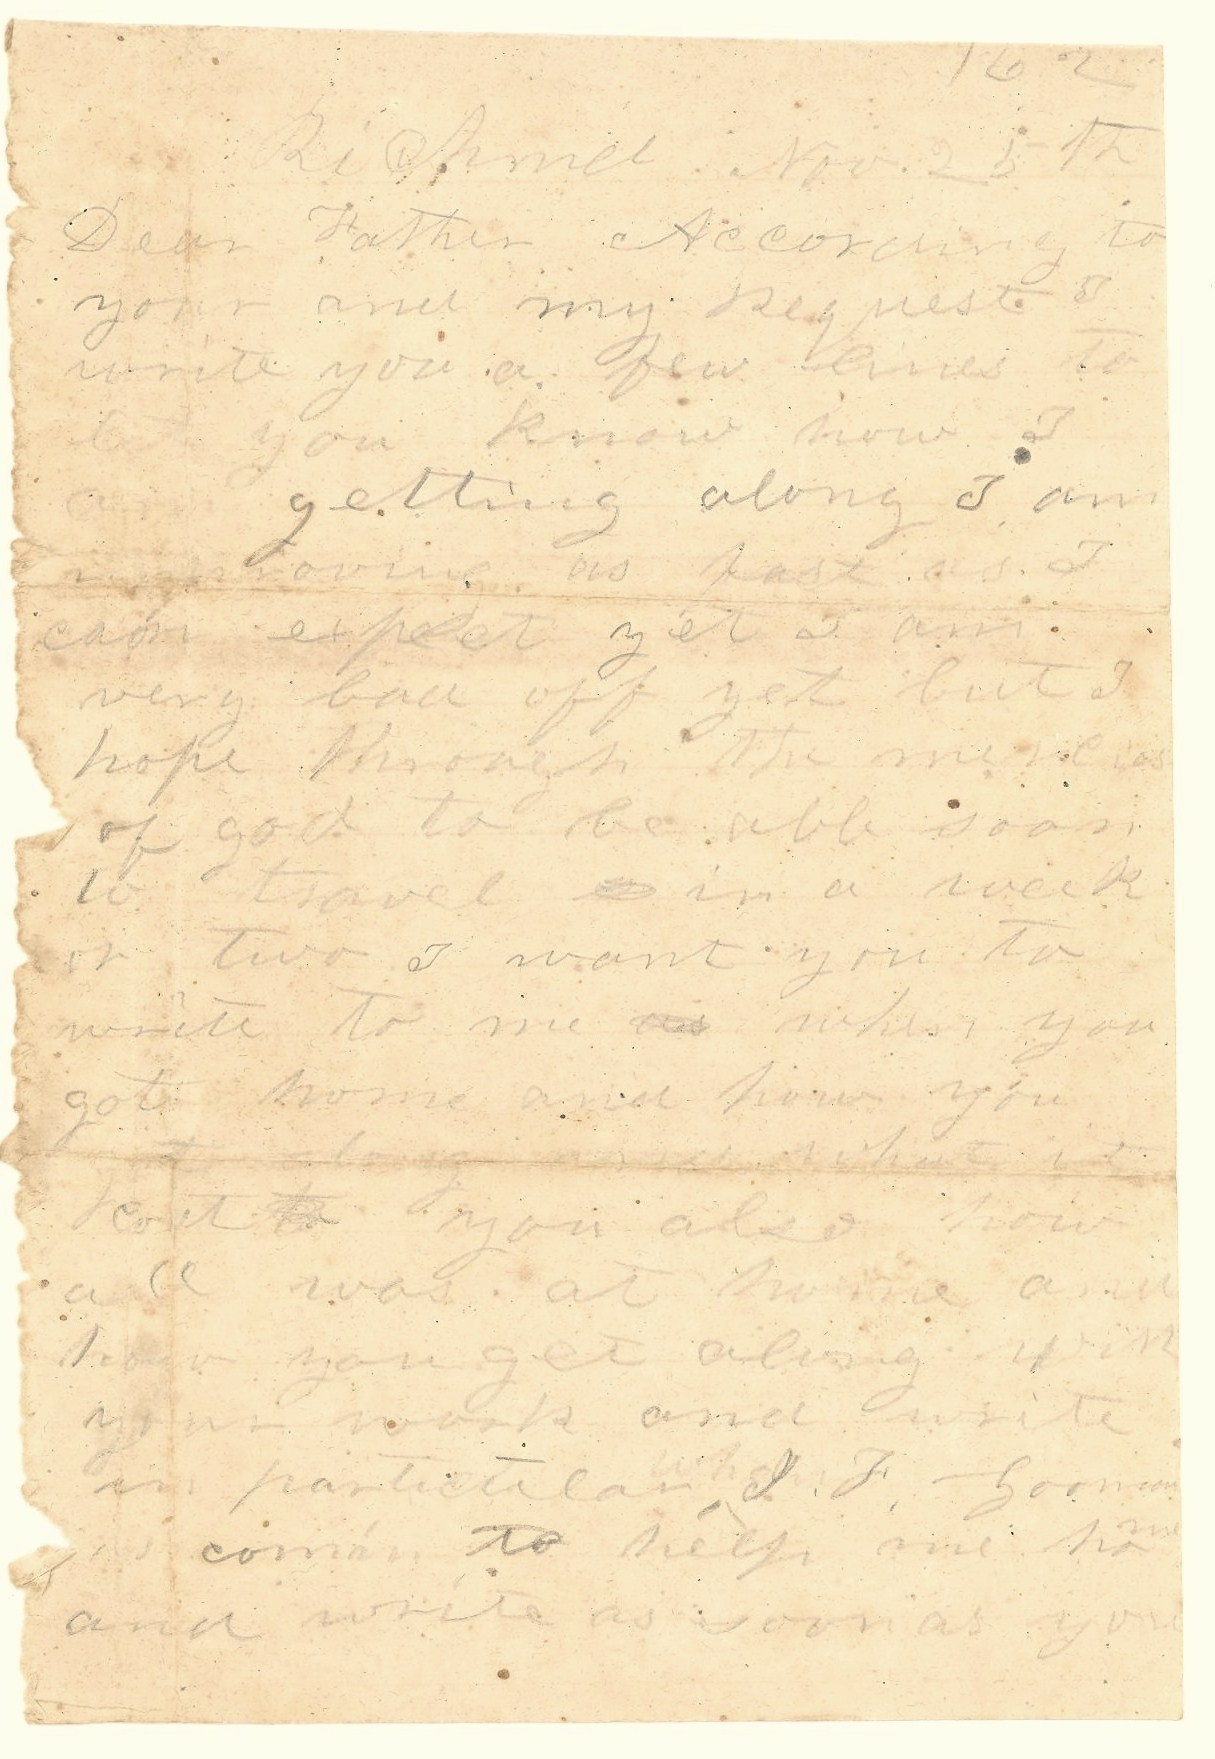 letter to me 25 november 1862 if he can to bring me some 23220